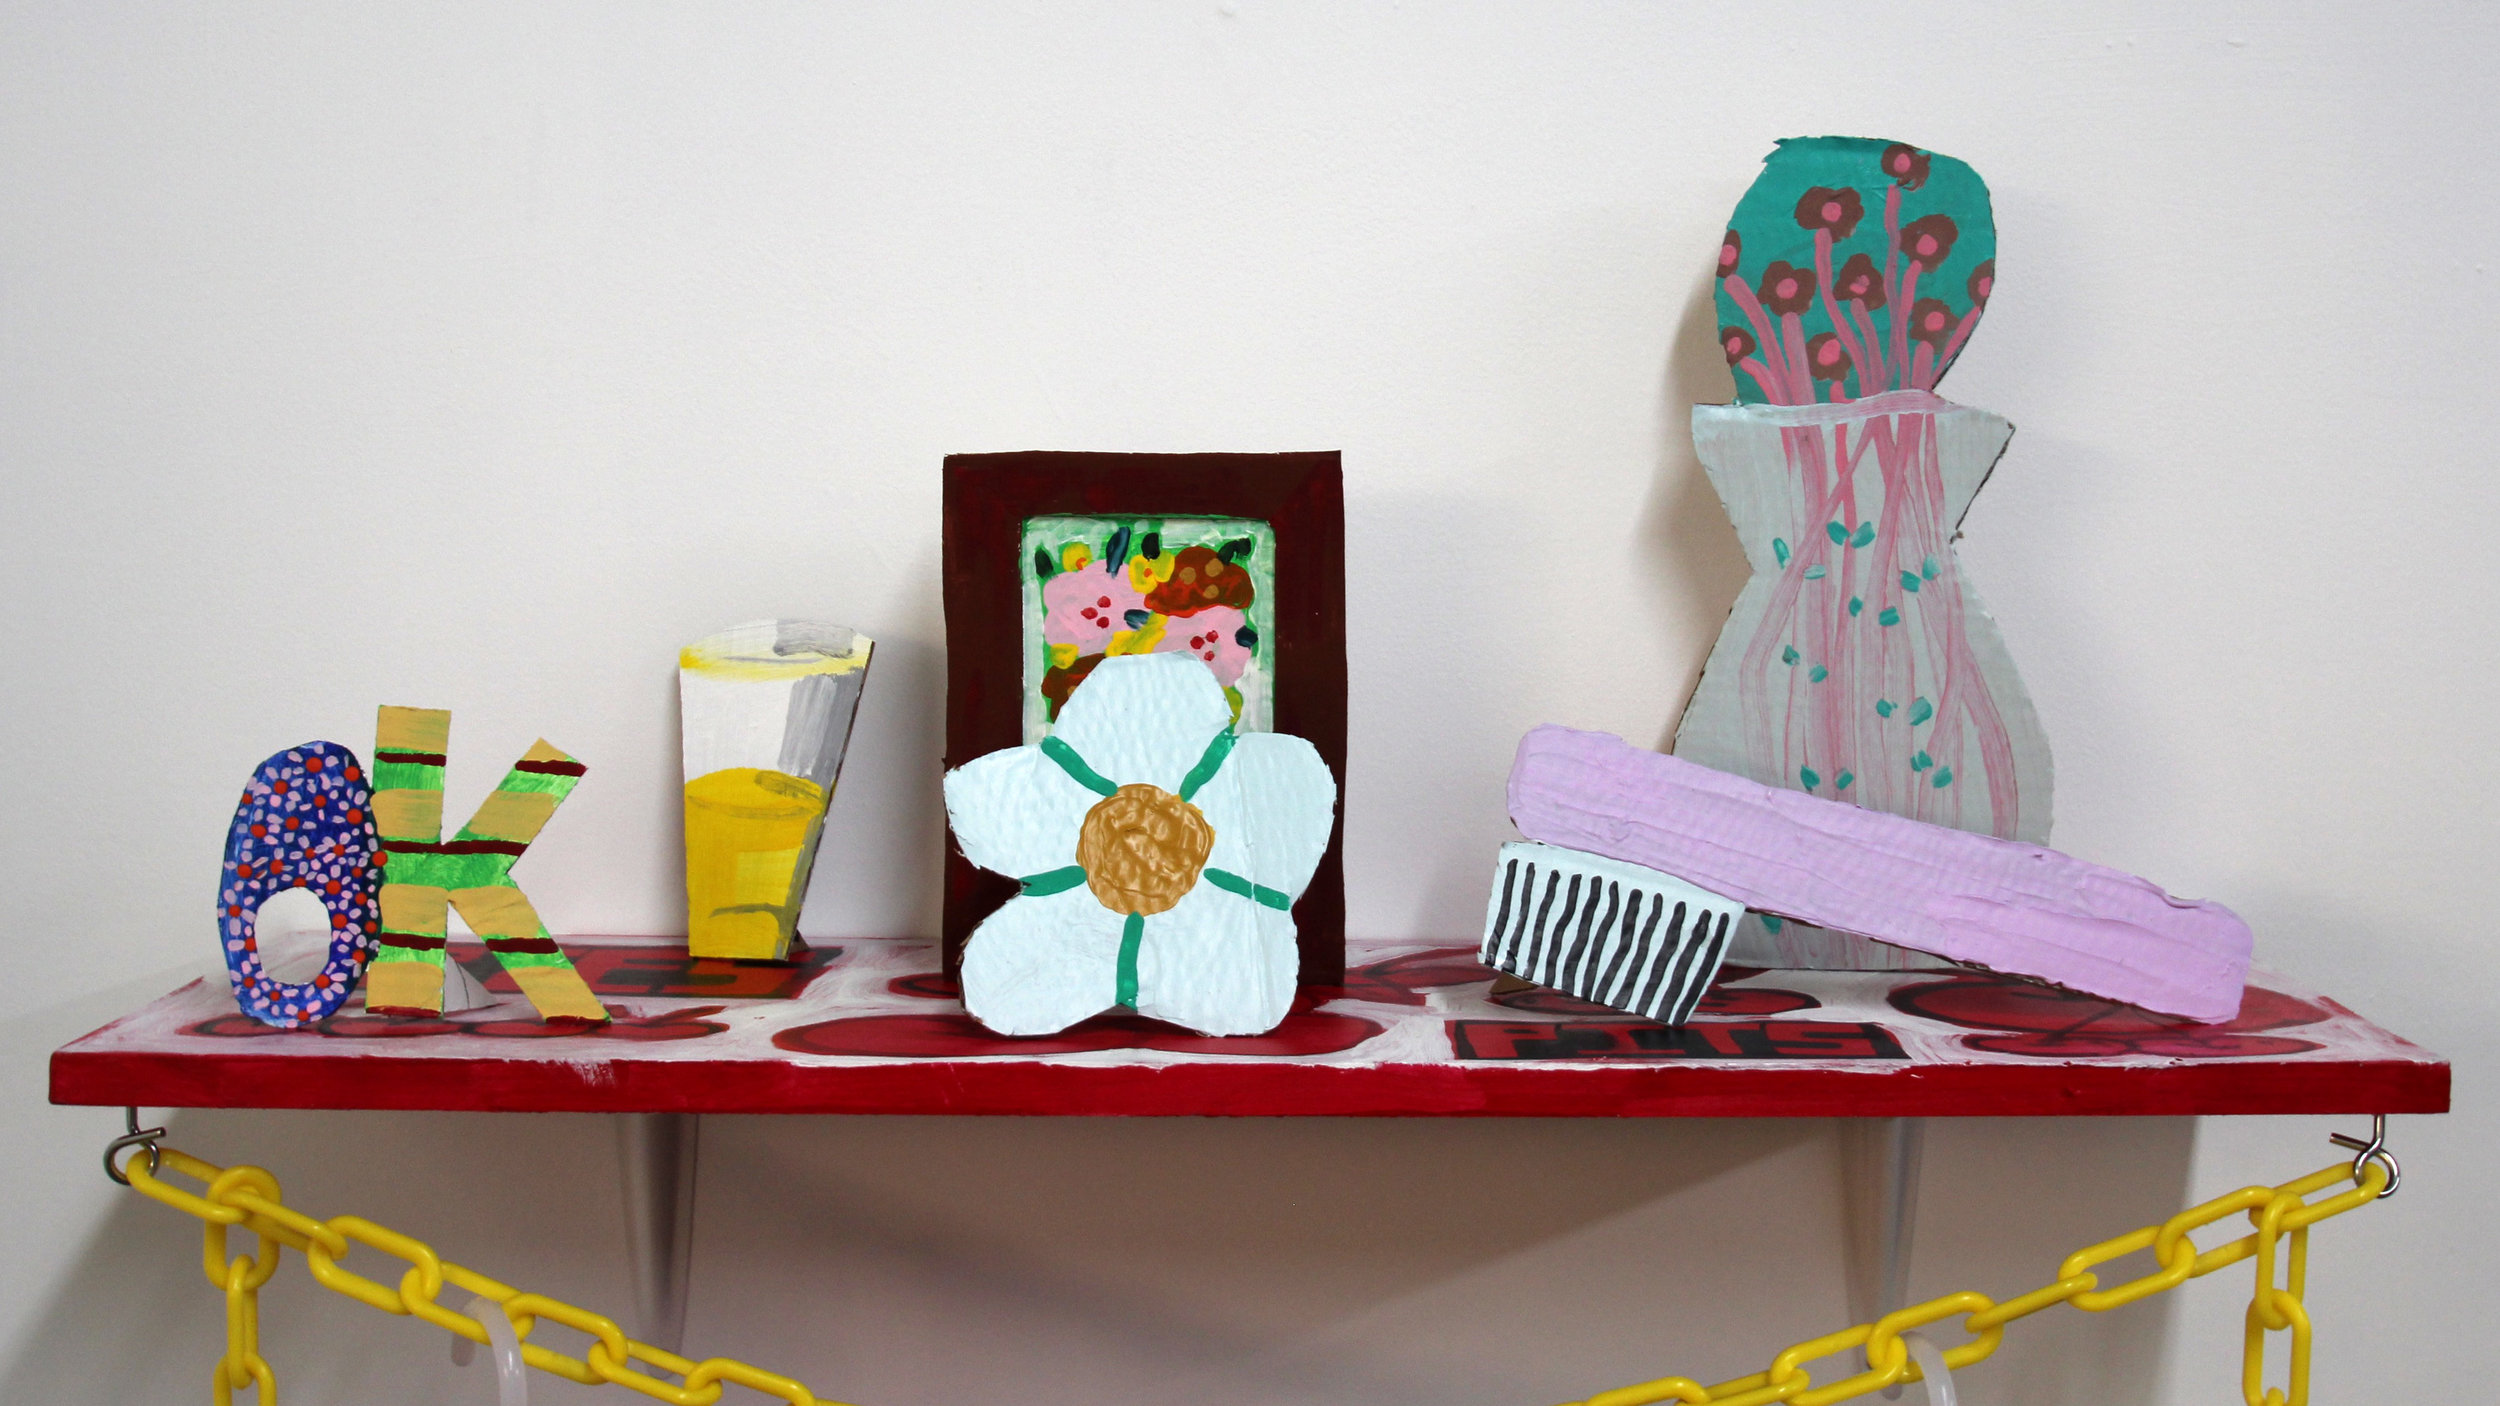 Willy Nilly  new works by Kellen Chasuk and Emma Parry. On view from July 15, 2017 through August 13. Curated by Anastasia Greer.